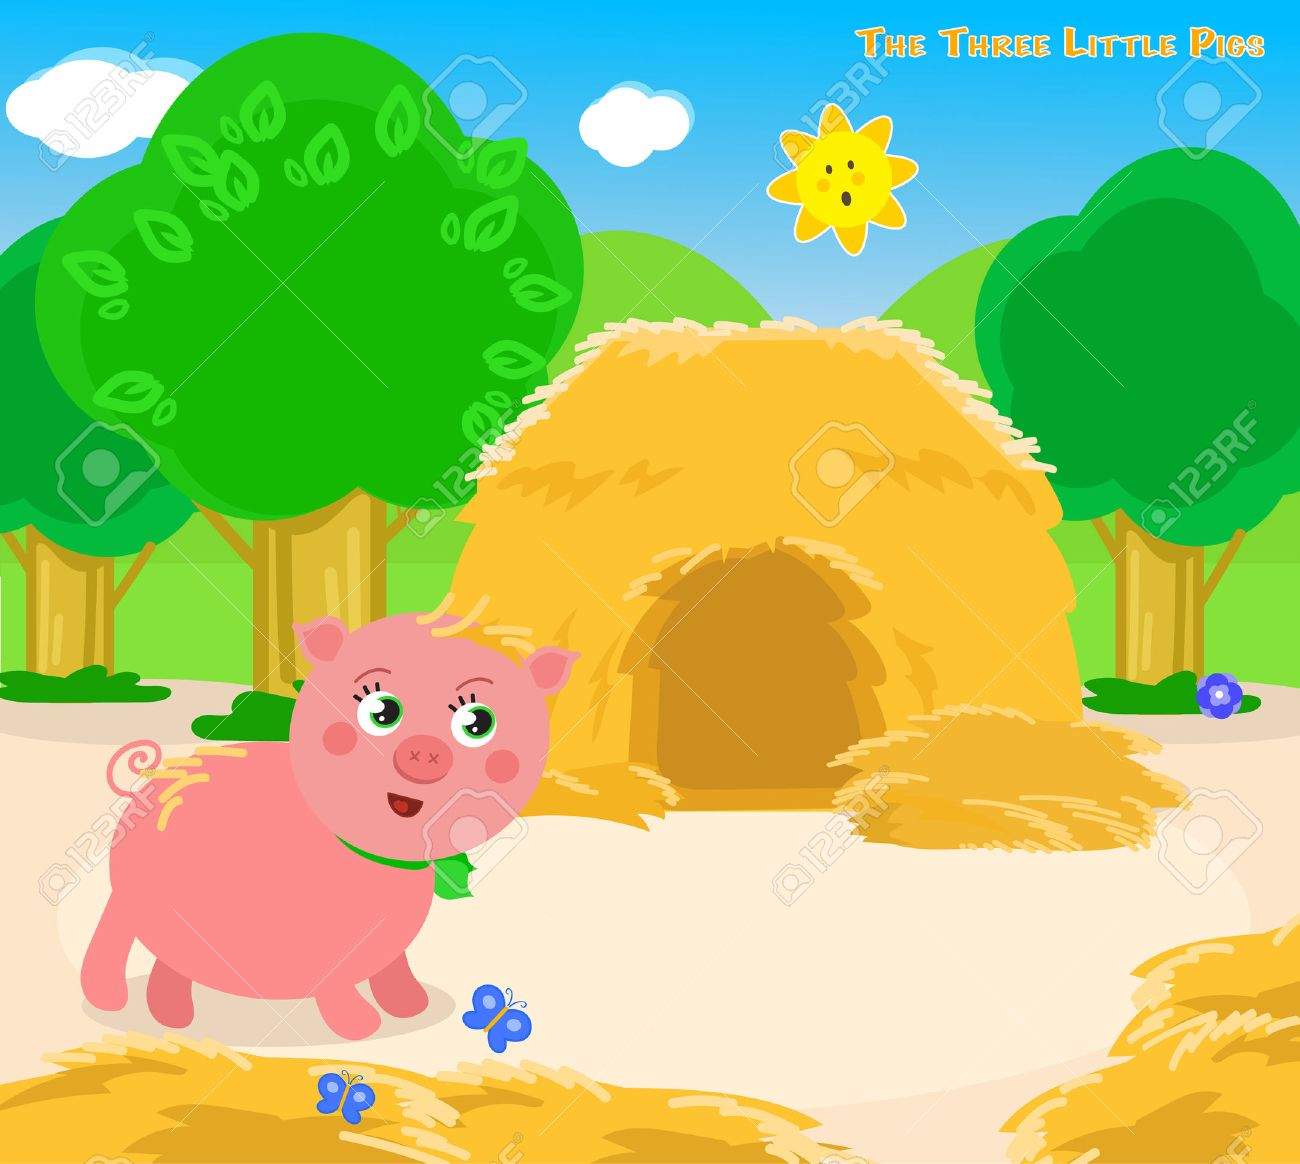 The first of the three little pigs builds a straw house. - 53926963